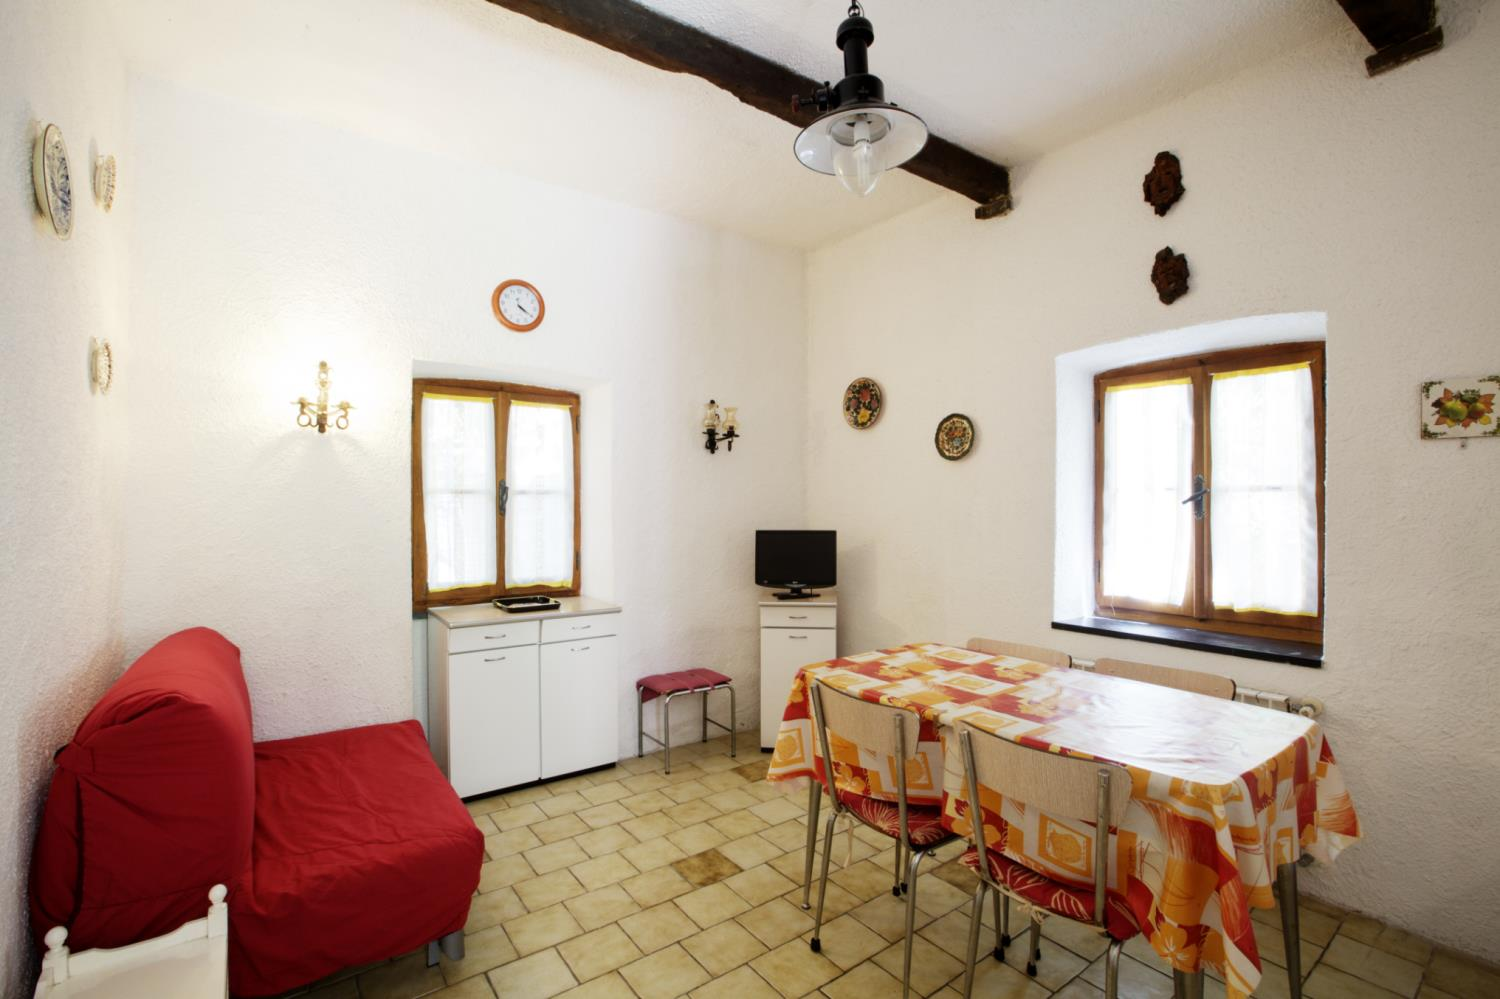 Biancaneve for 3 guests in Levanto, Italien